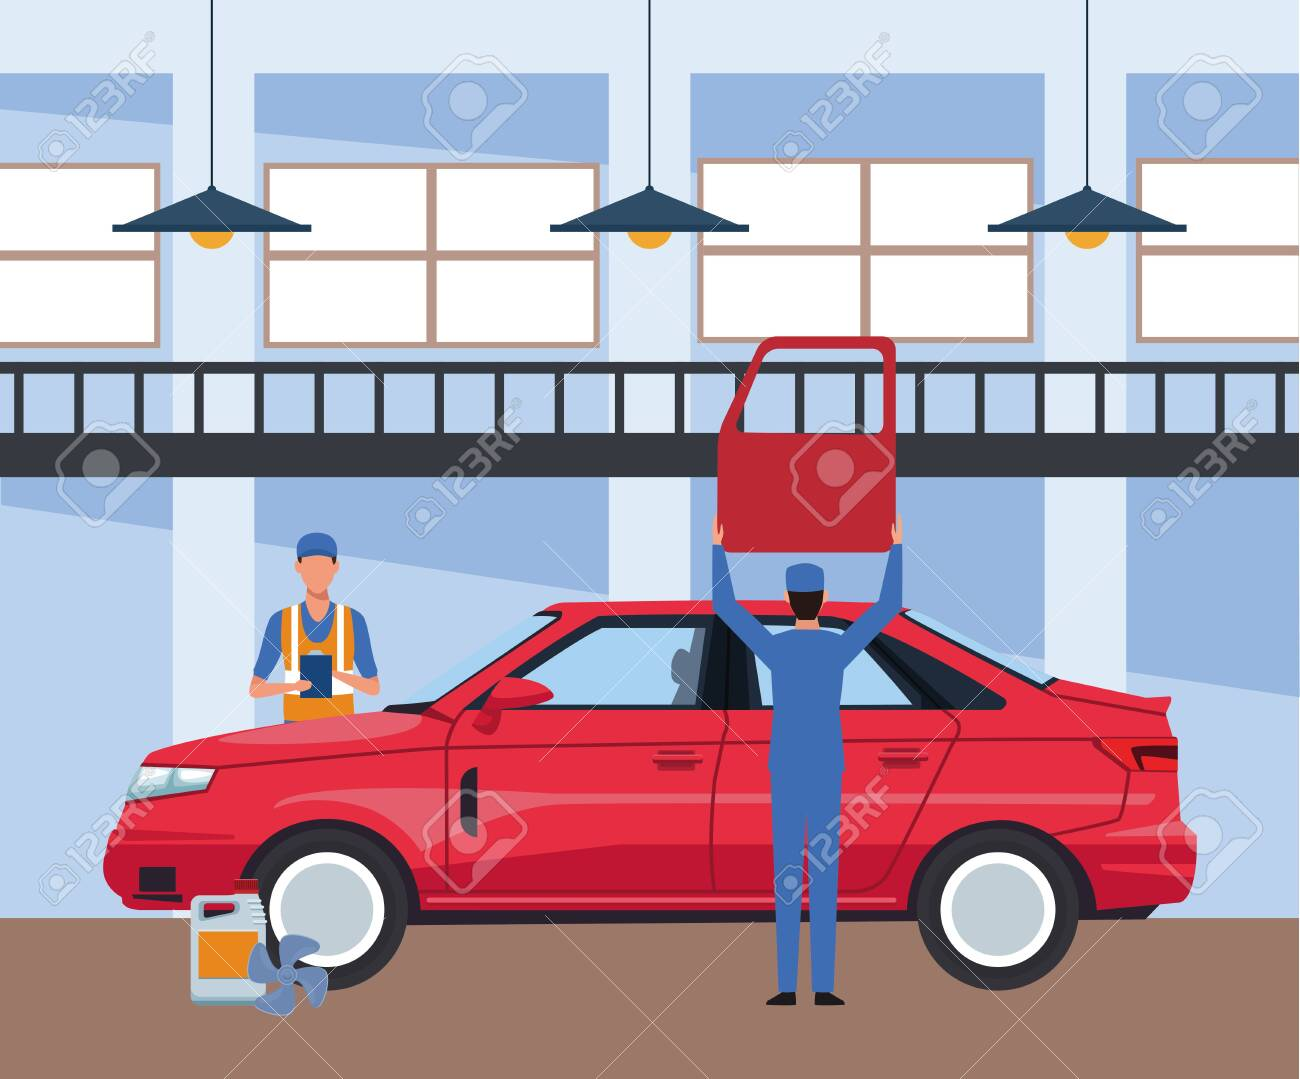 Car Repair Shop Scenery With Red Car And Mechanics Working On Royalty Free Cliparts Vectors And Stock Illustration Image 139890761